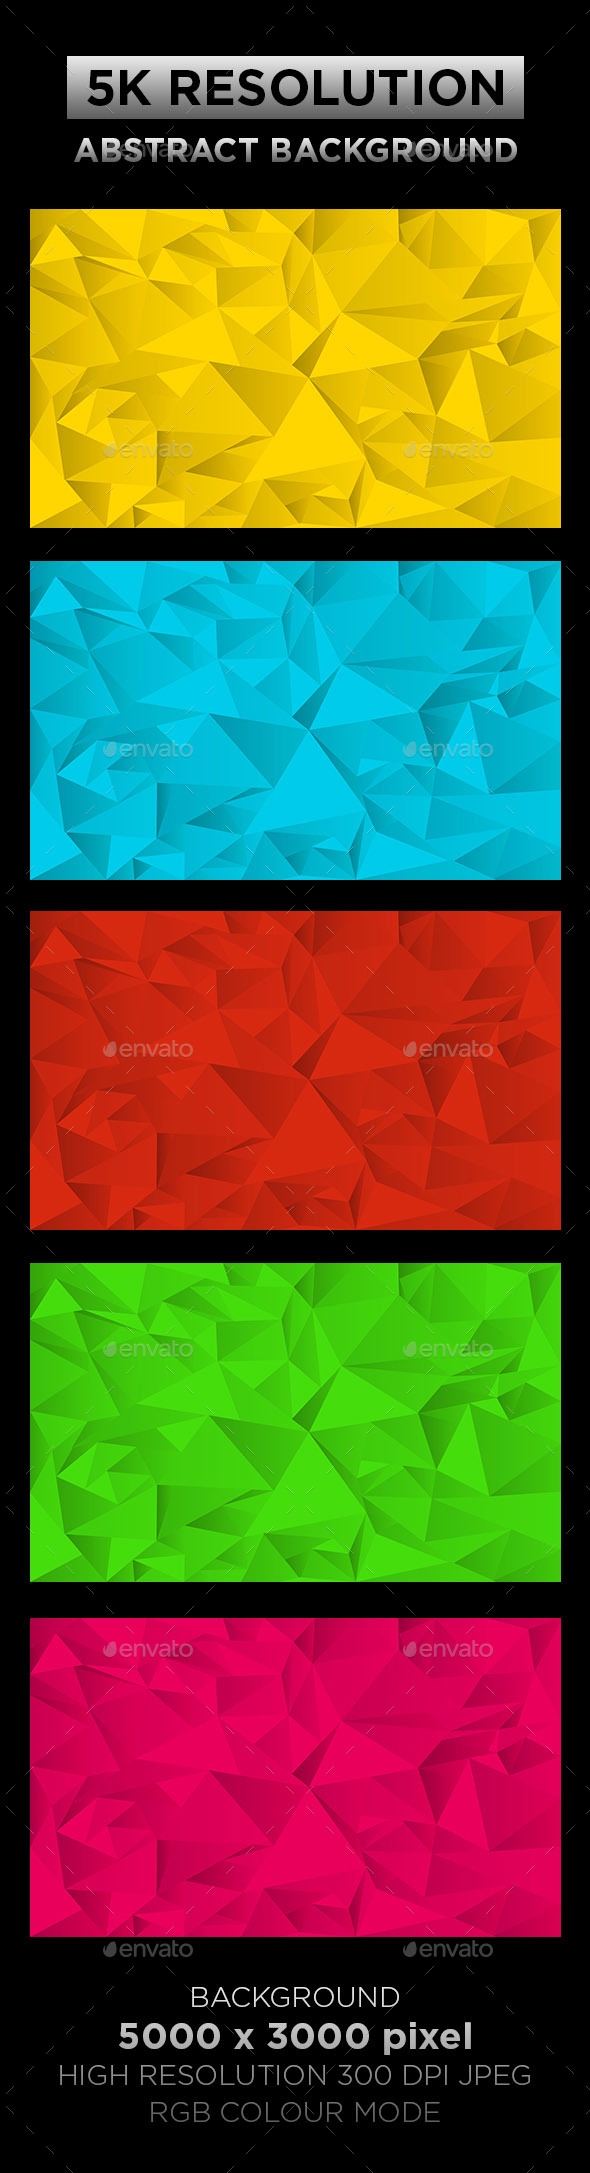 Abstract Background 001 - Backgrounds Graphics